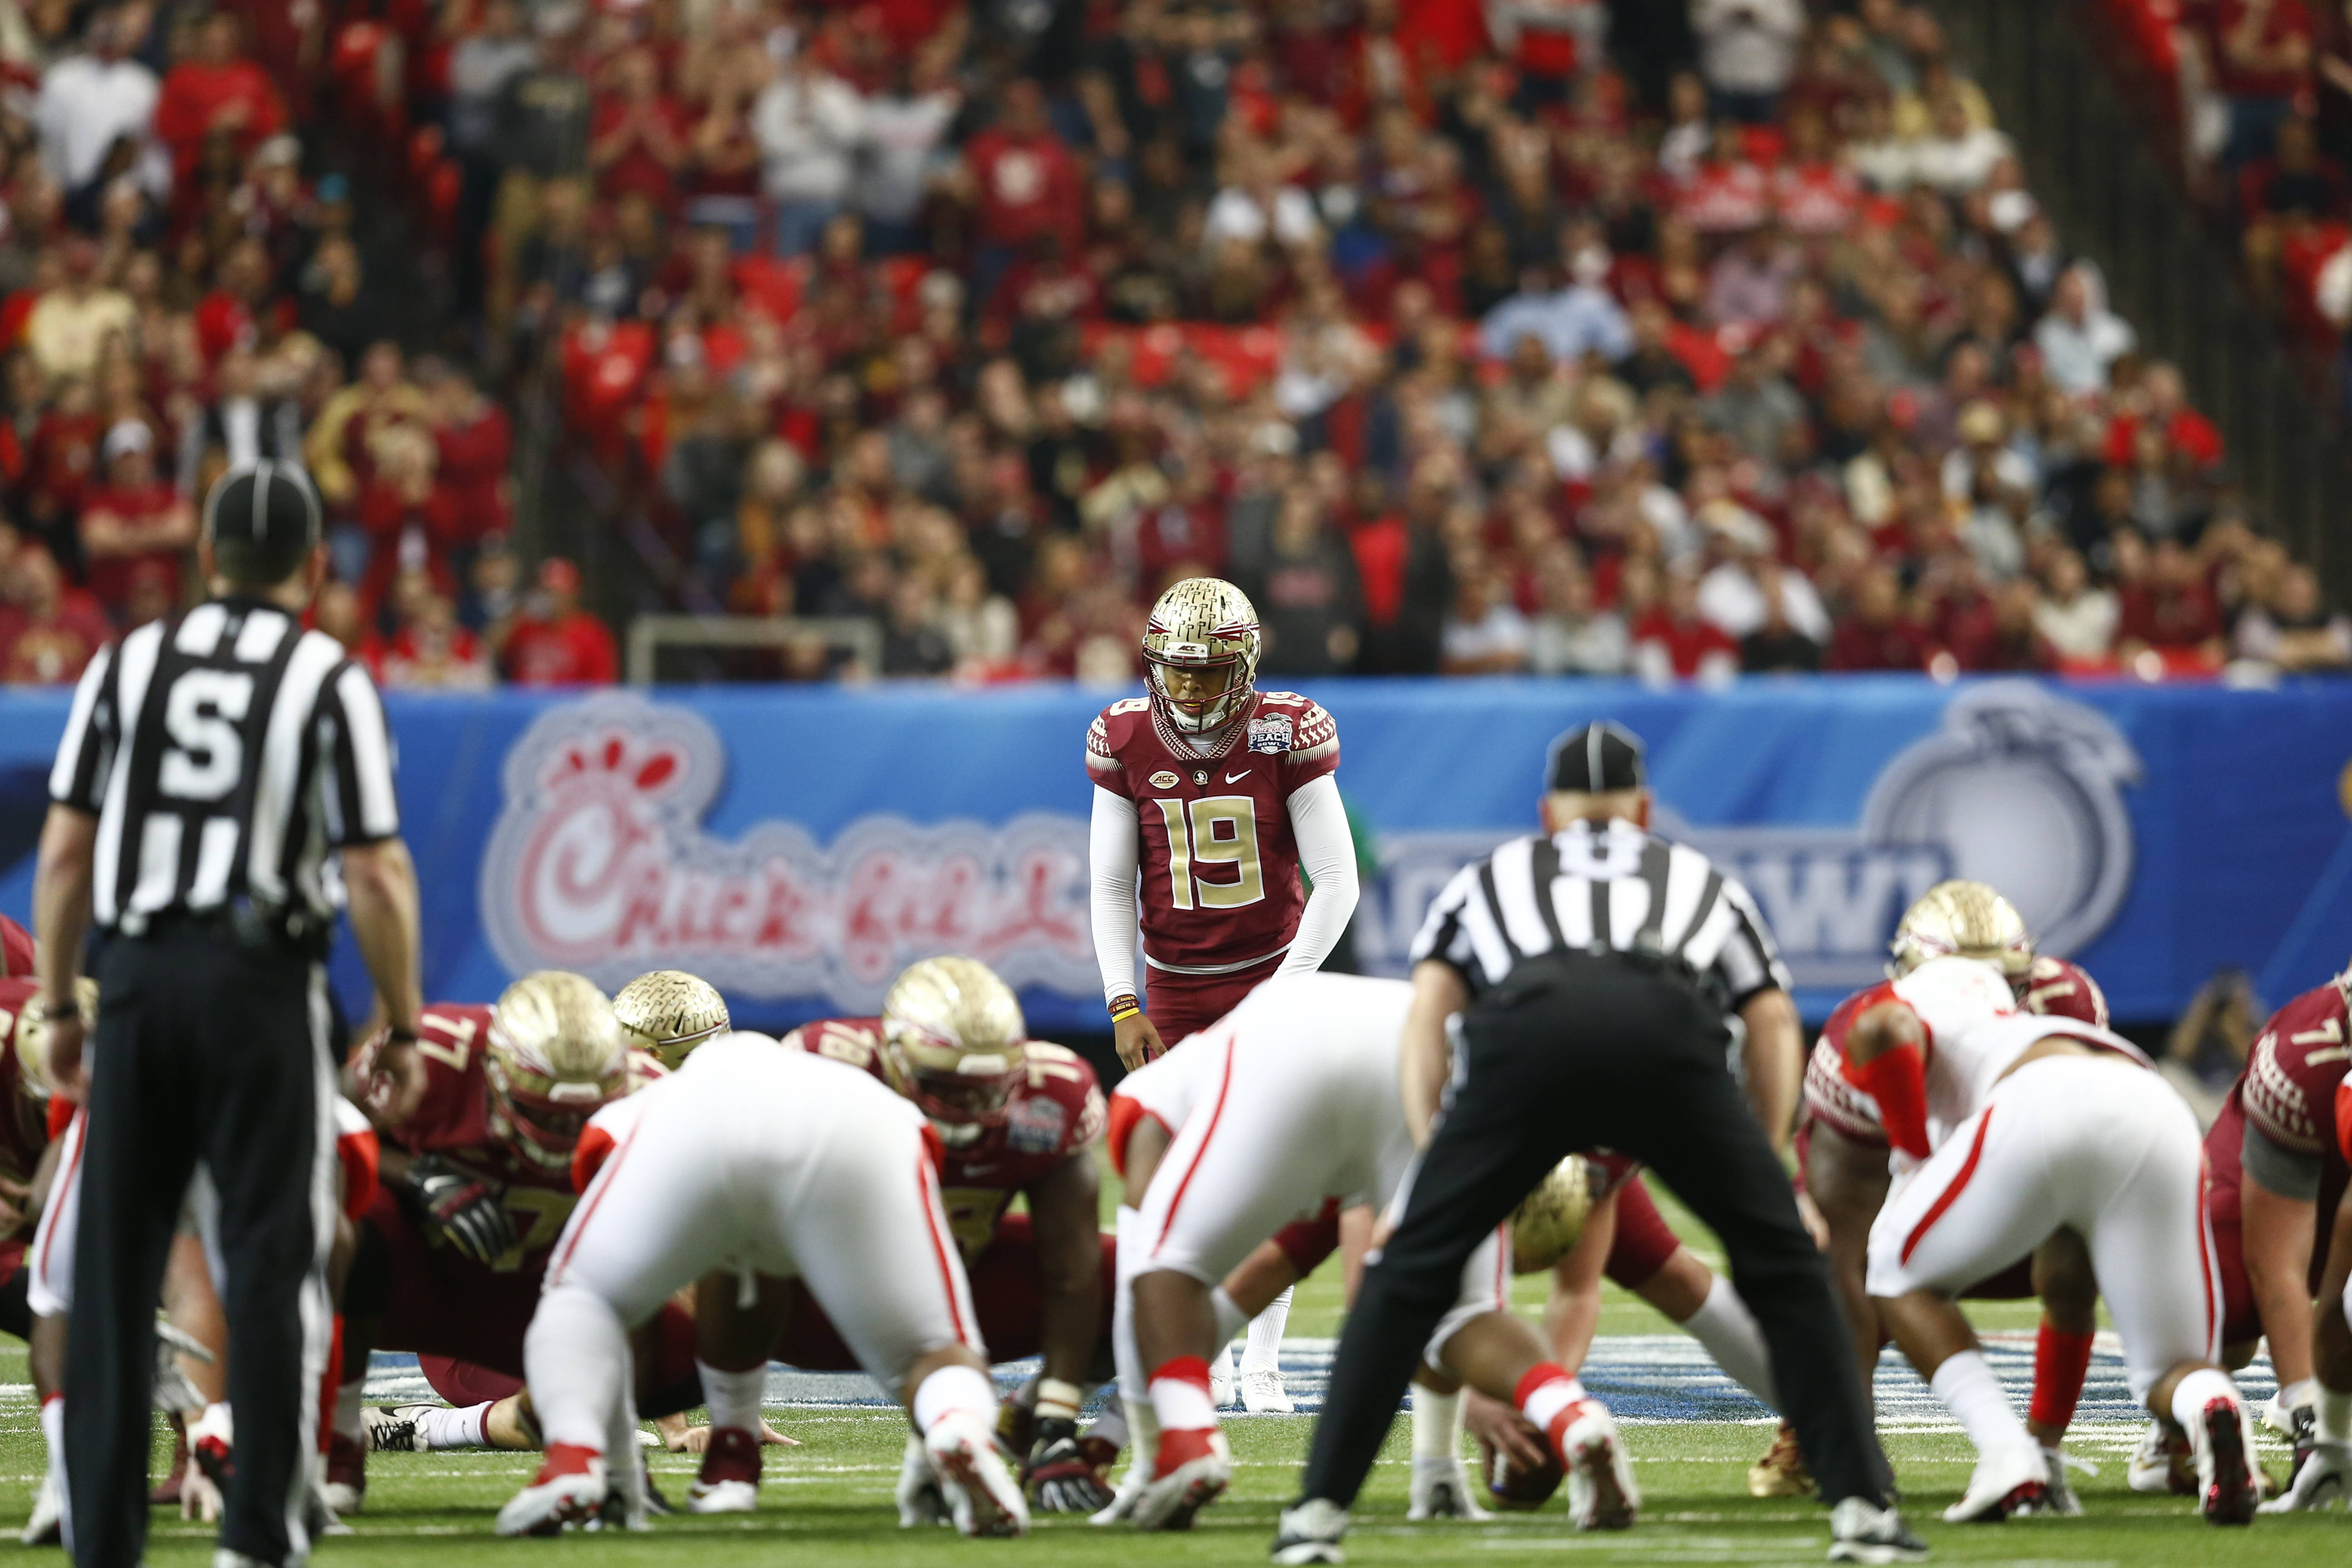 Roberto Aguayo sets up for field goal try - Jeff Romance